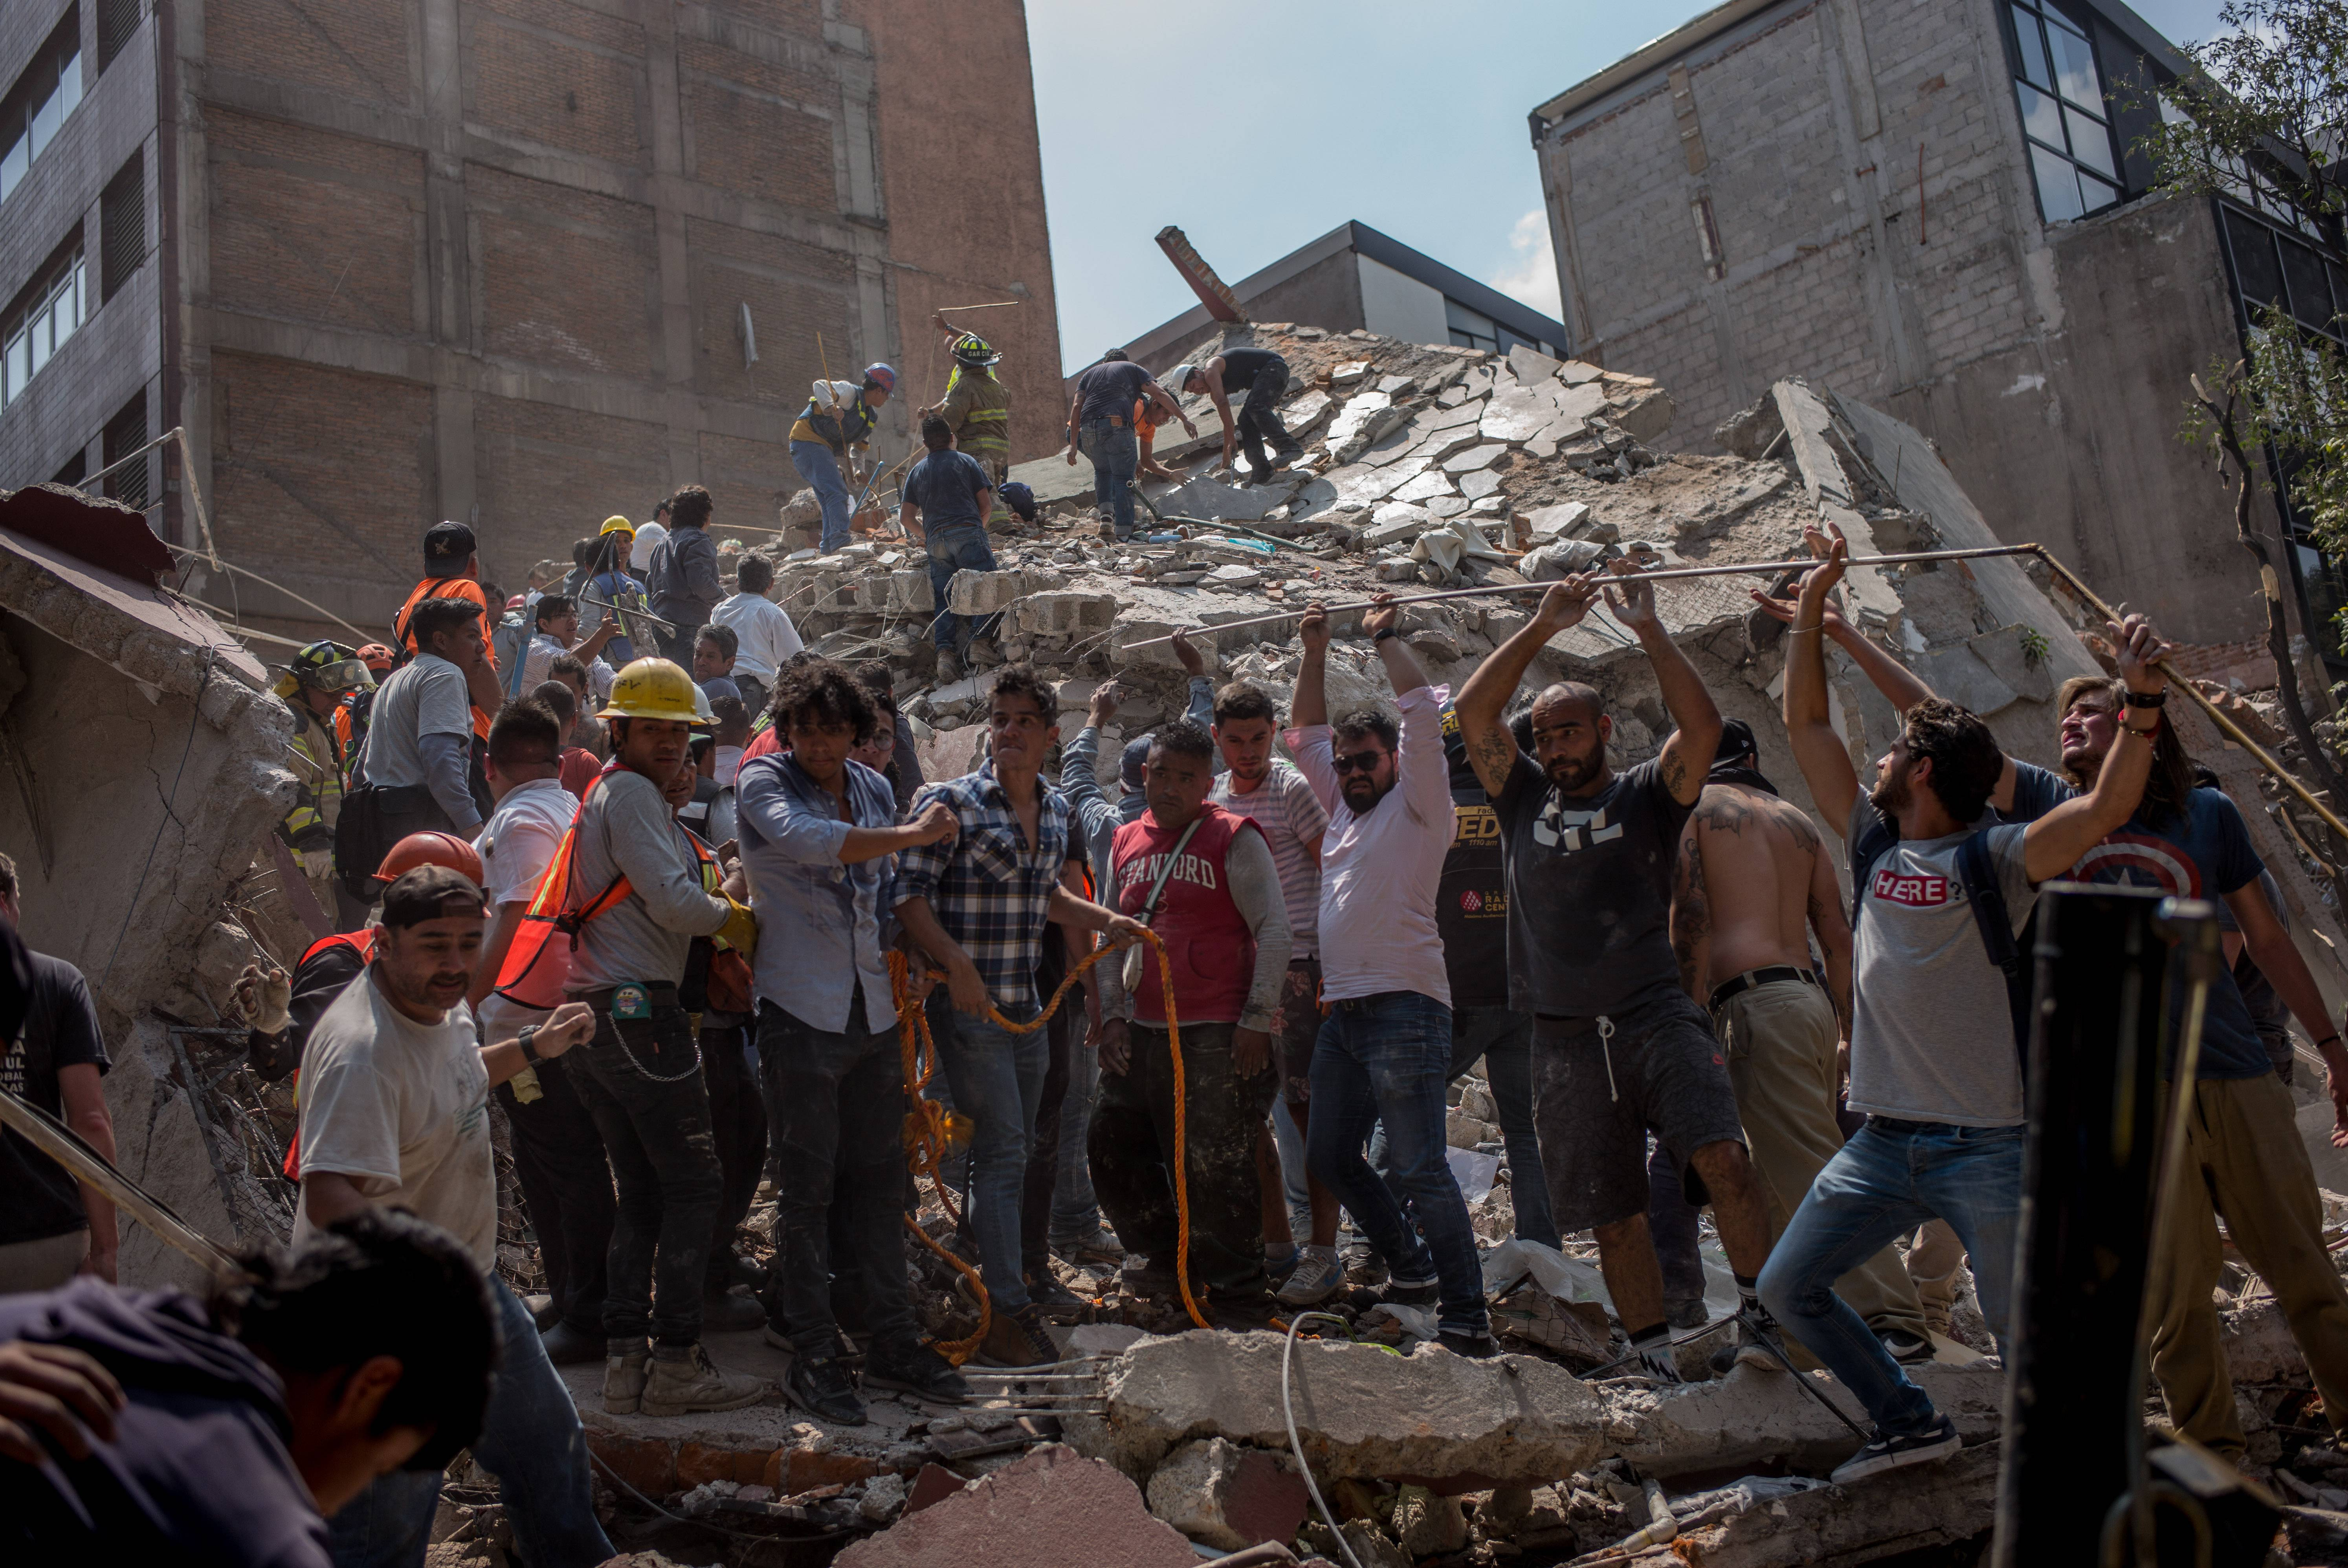 People remove debris from a collapsed building Monday following an earthquake in Mexico City.